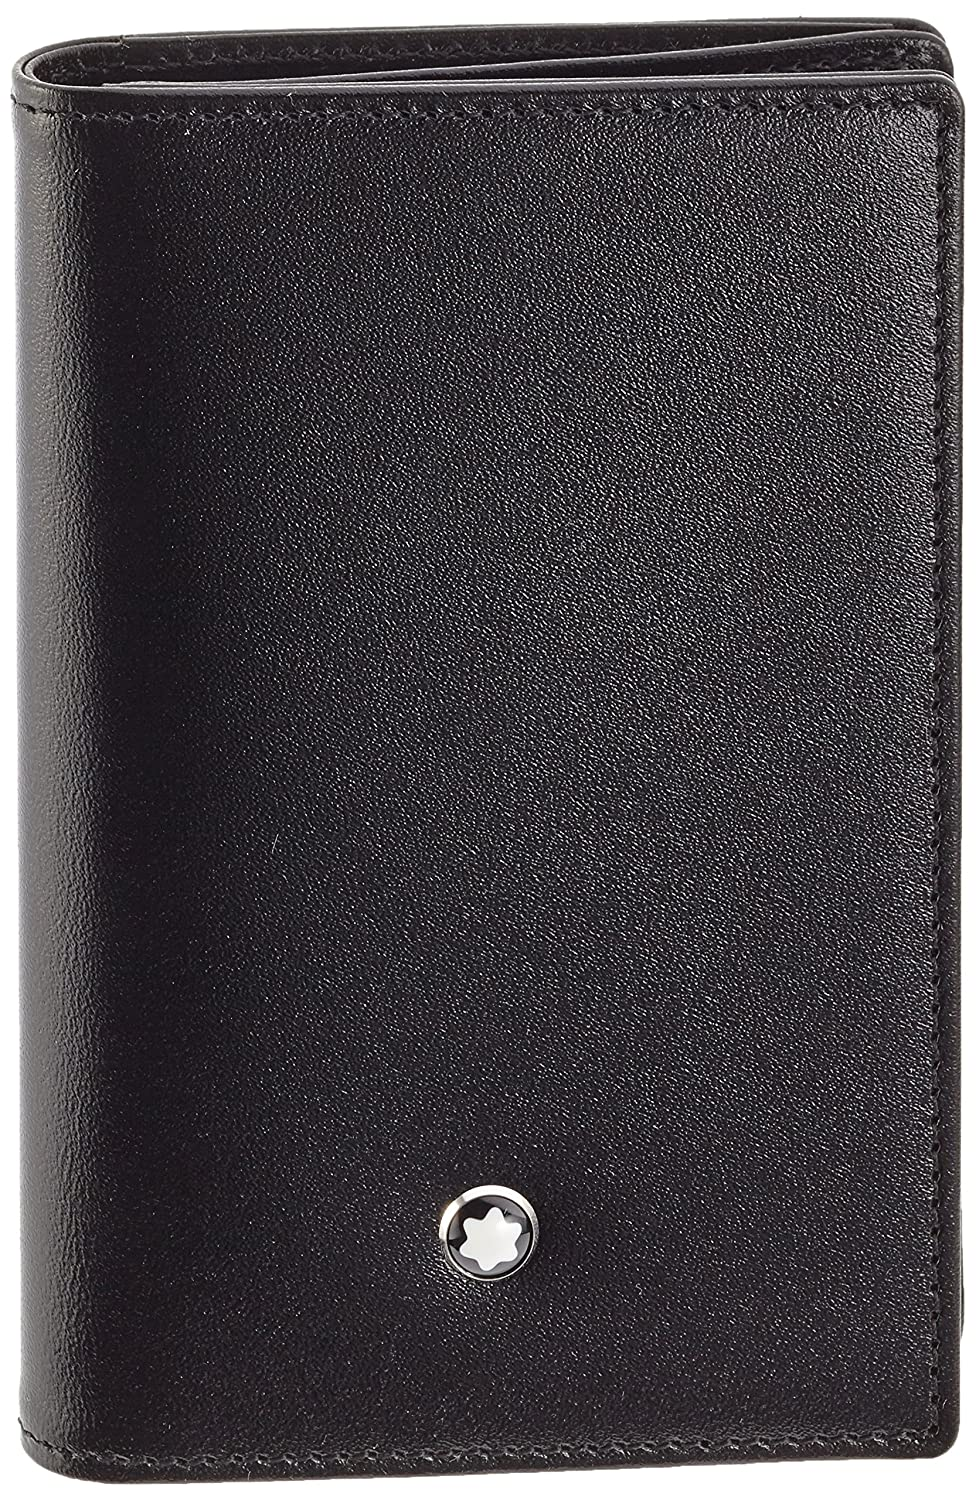 Amazon.com: Montblanc Meisterstuck Business Card Holder 14108: Home ...